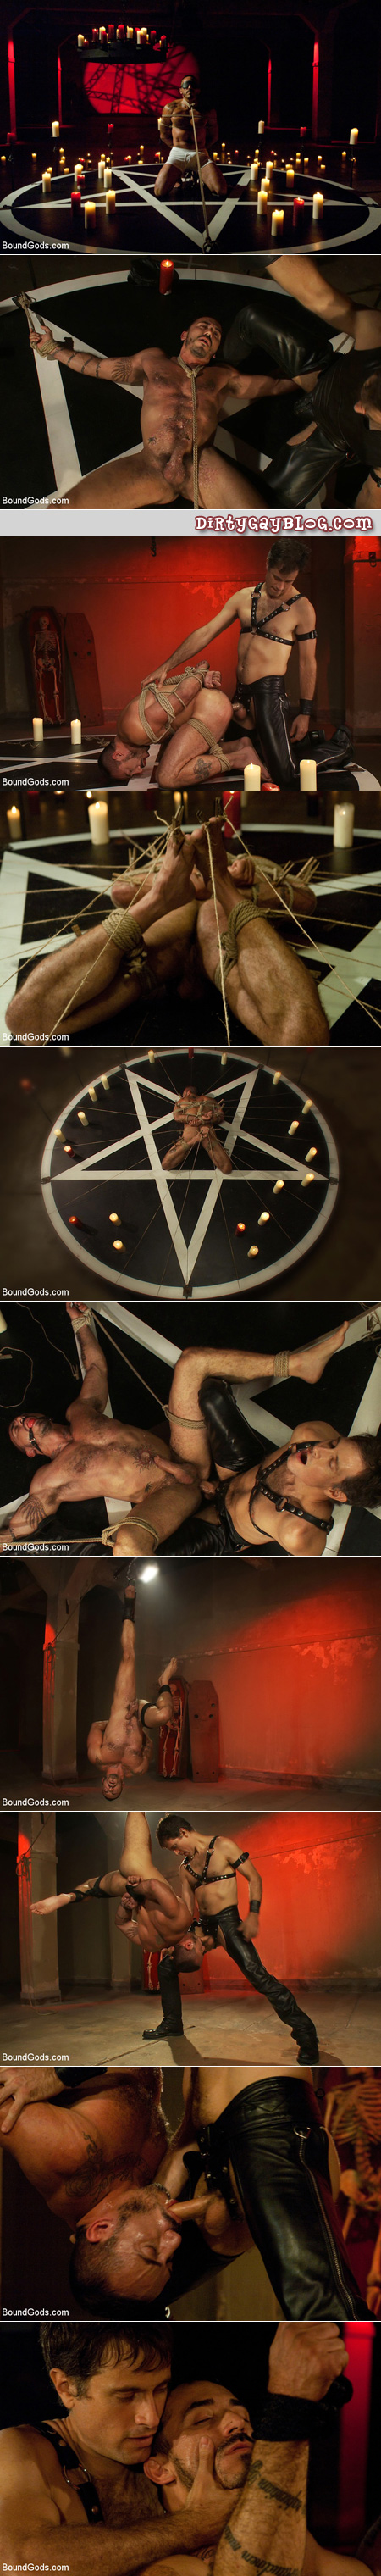 A hairy male stud is tied up by his leather master and treated to rope, bondage, candle wax, ball gags, clothespins and more.